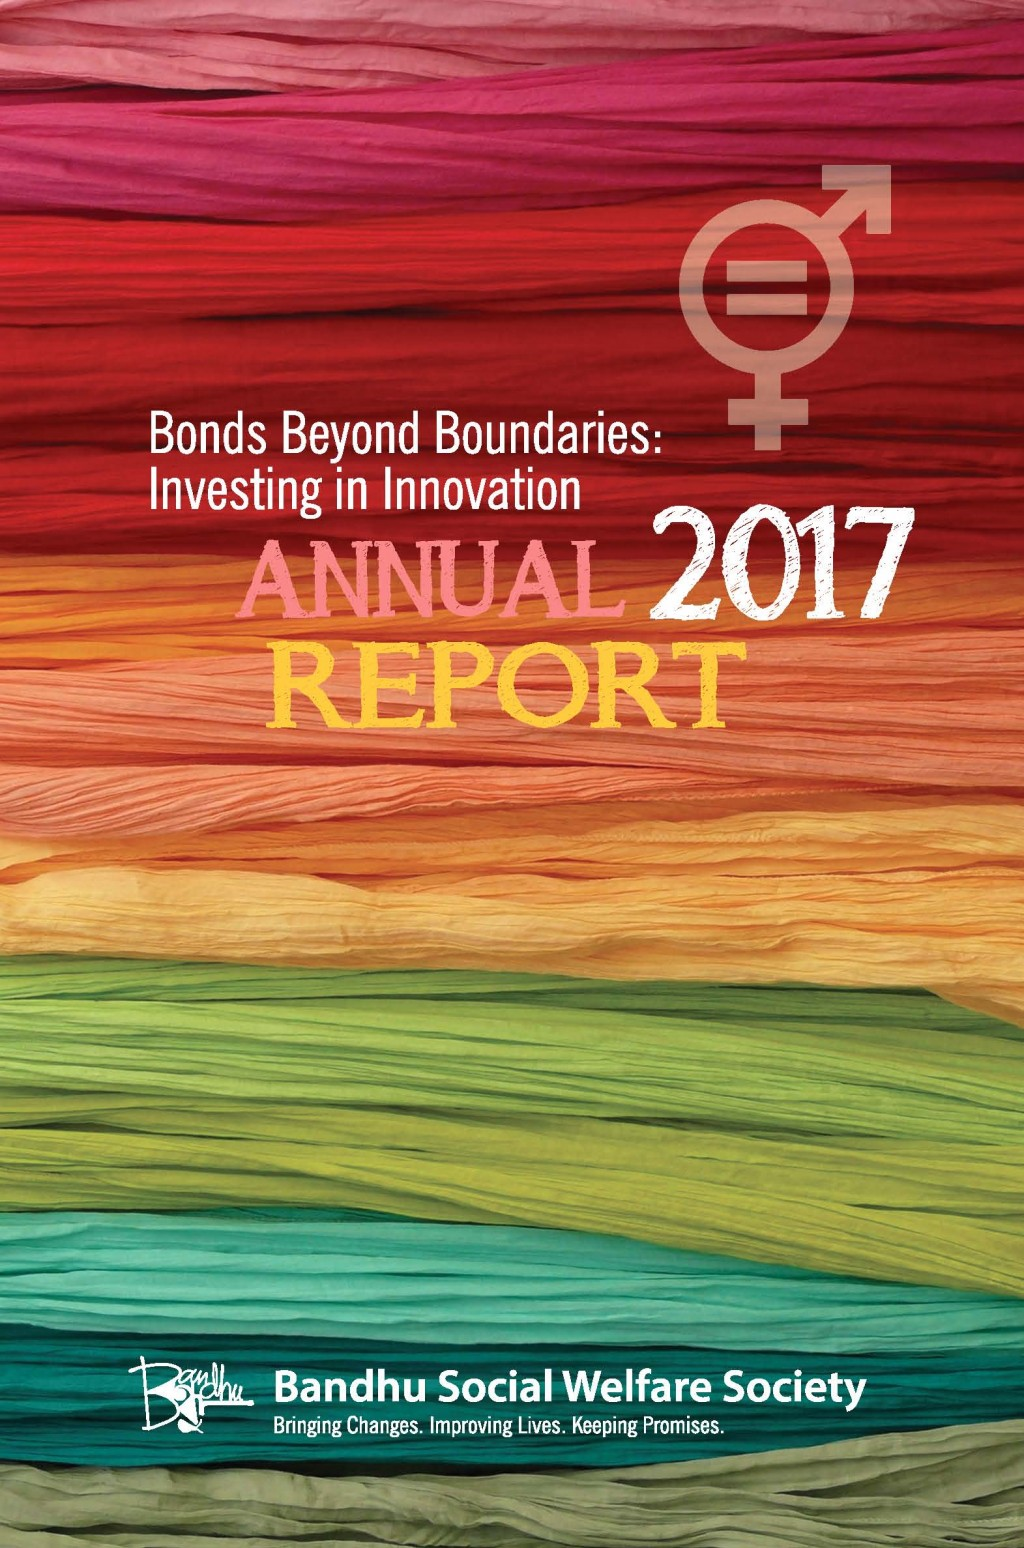 Annual Report 2017 of Bandhu_Page_01